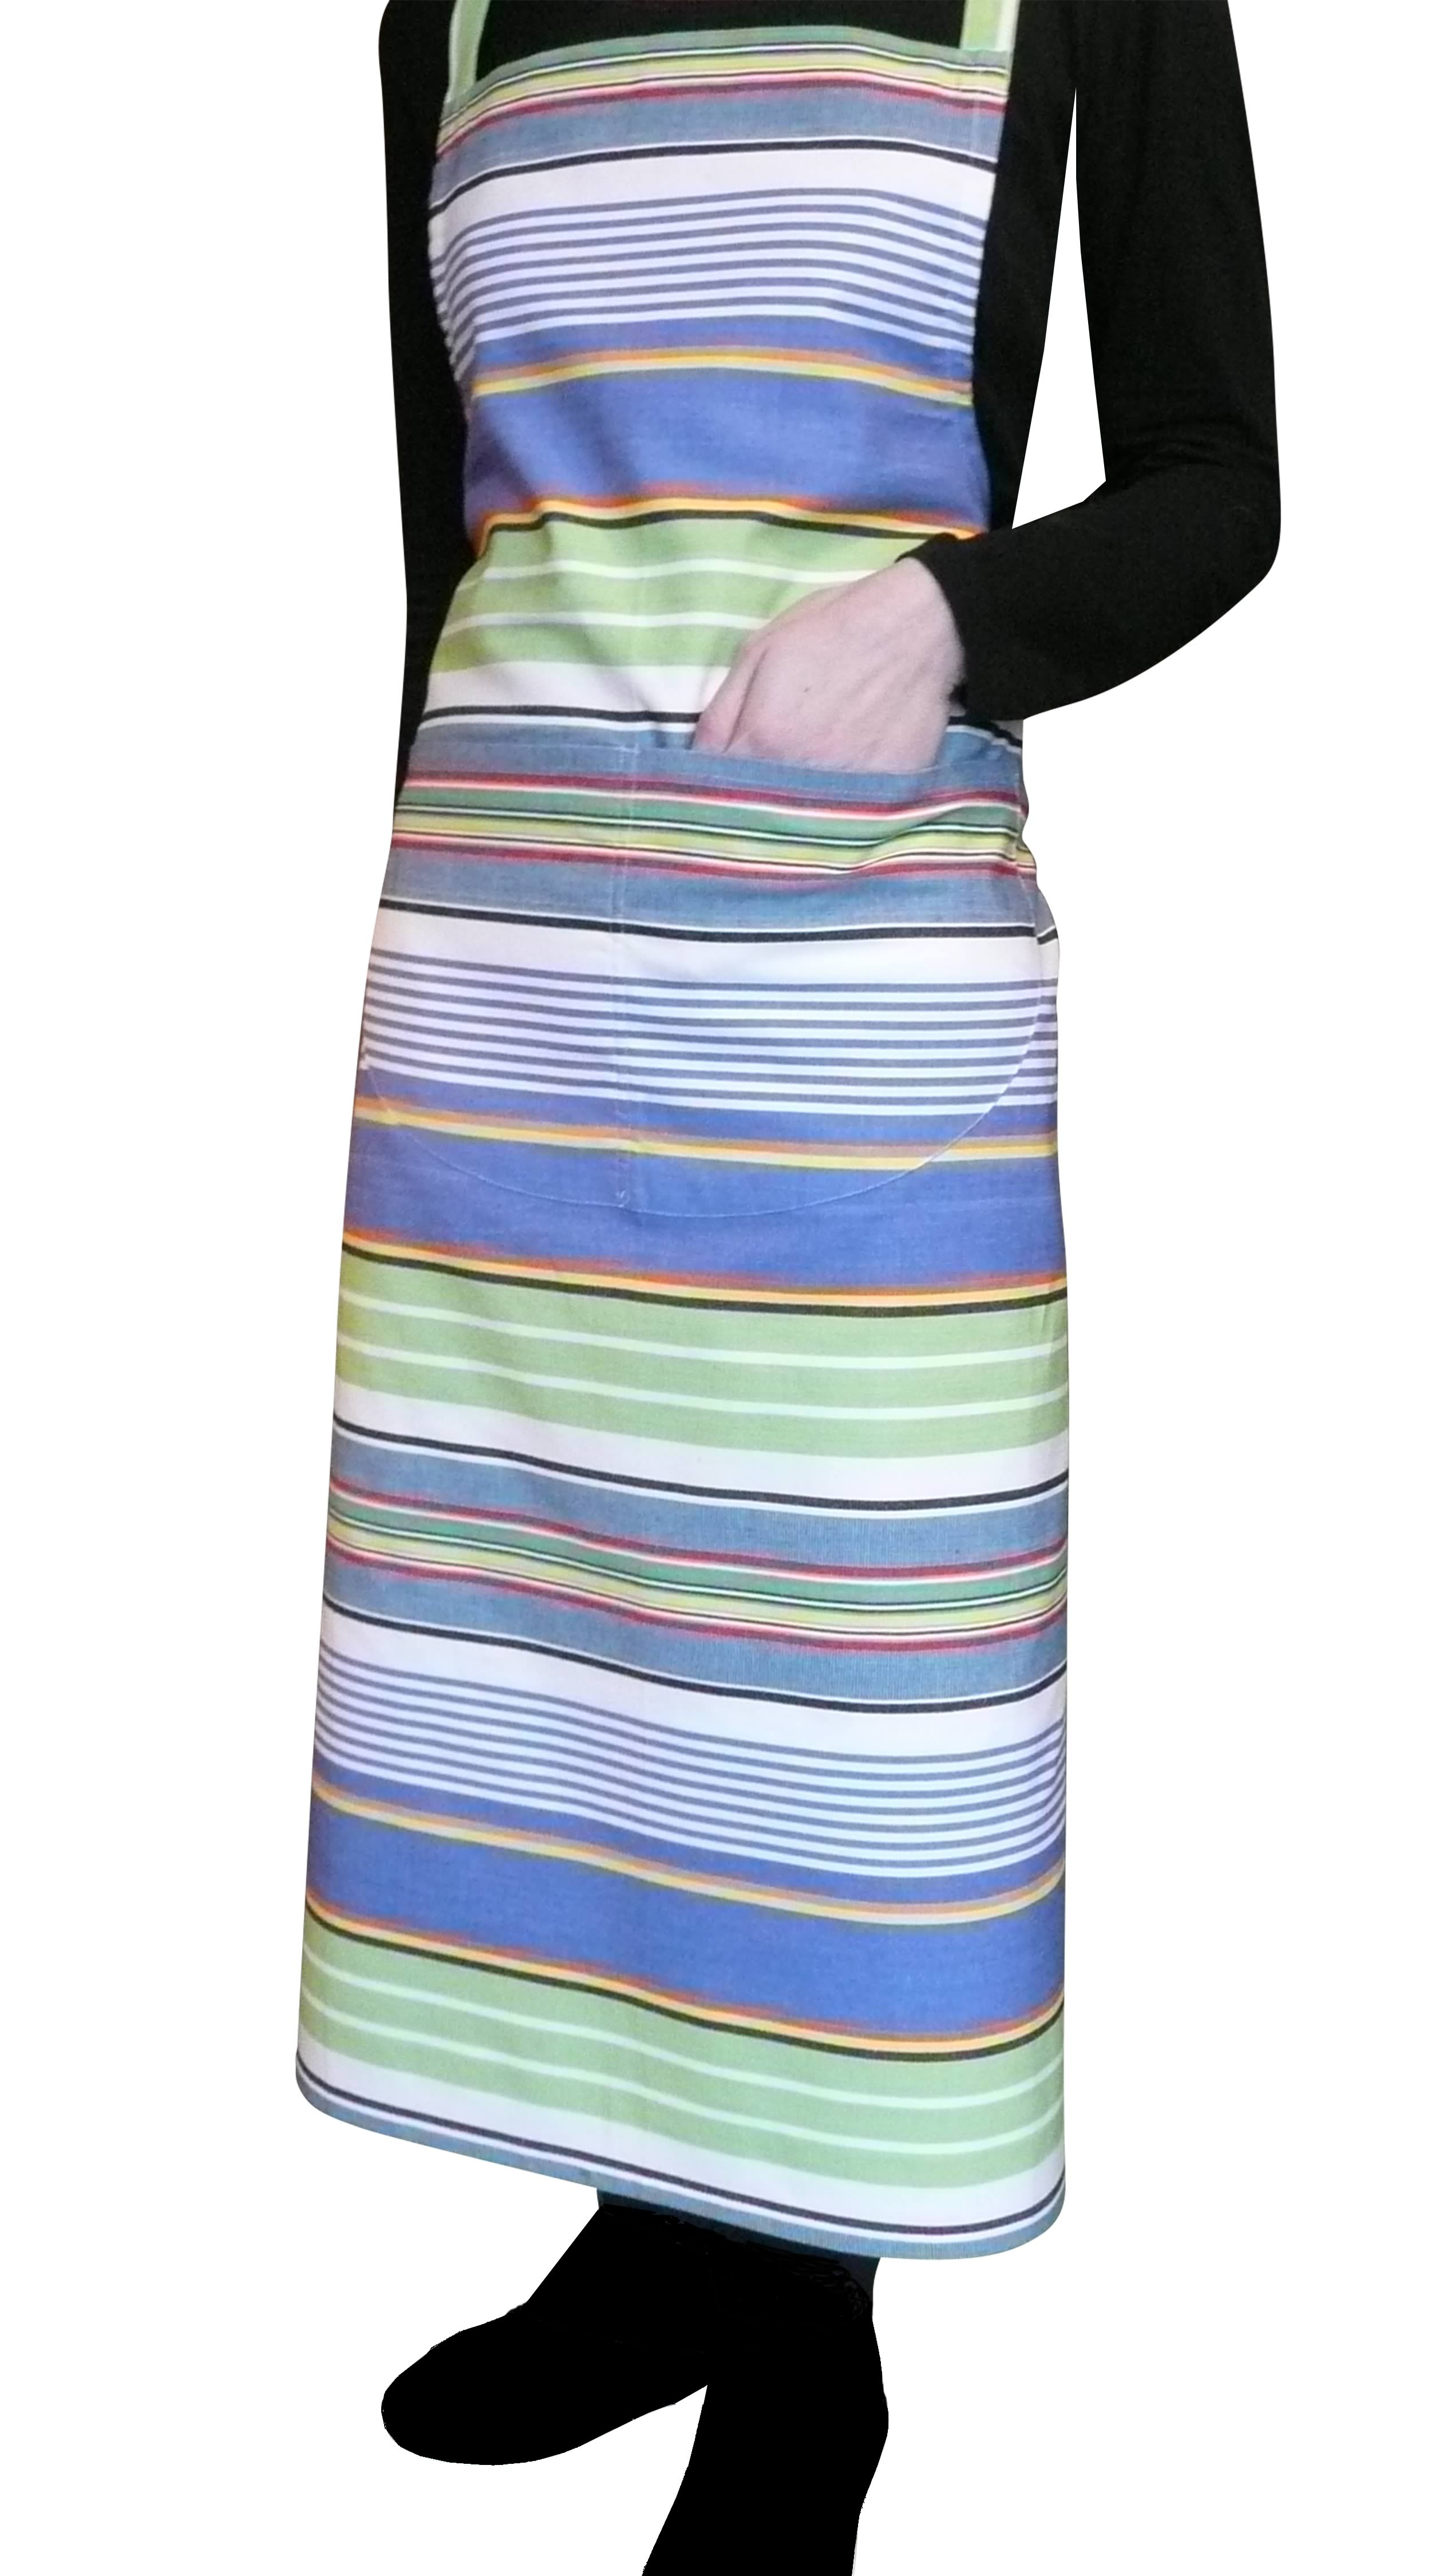 Tumbling Striped Cotton Apron bright blue, denim blue, lime green